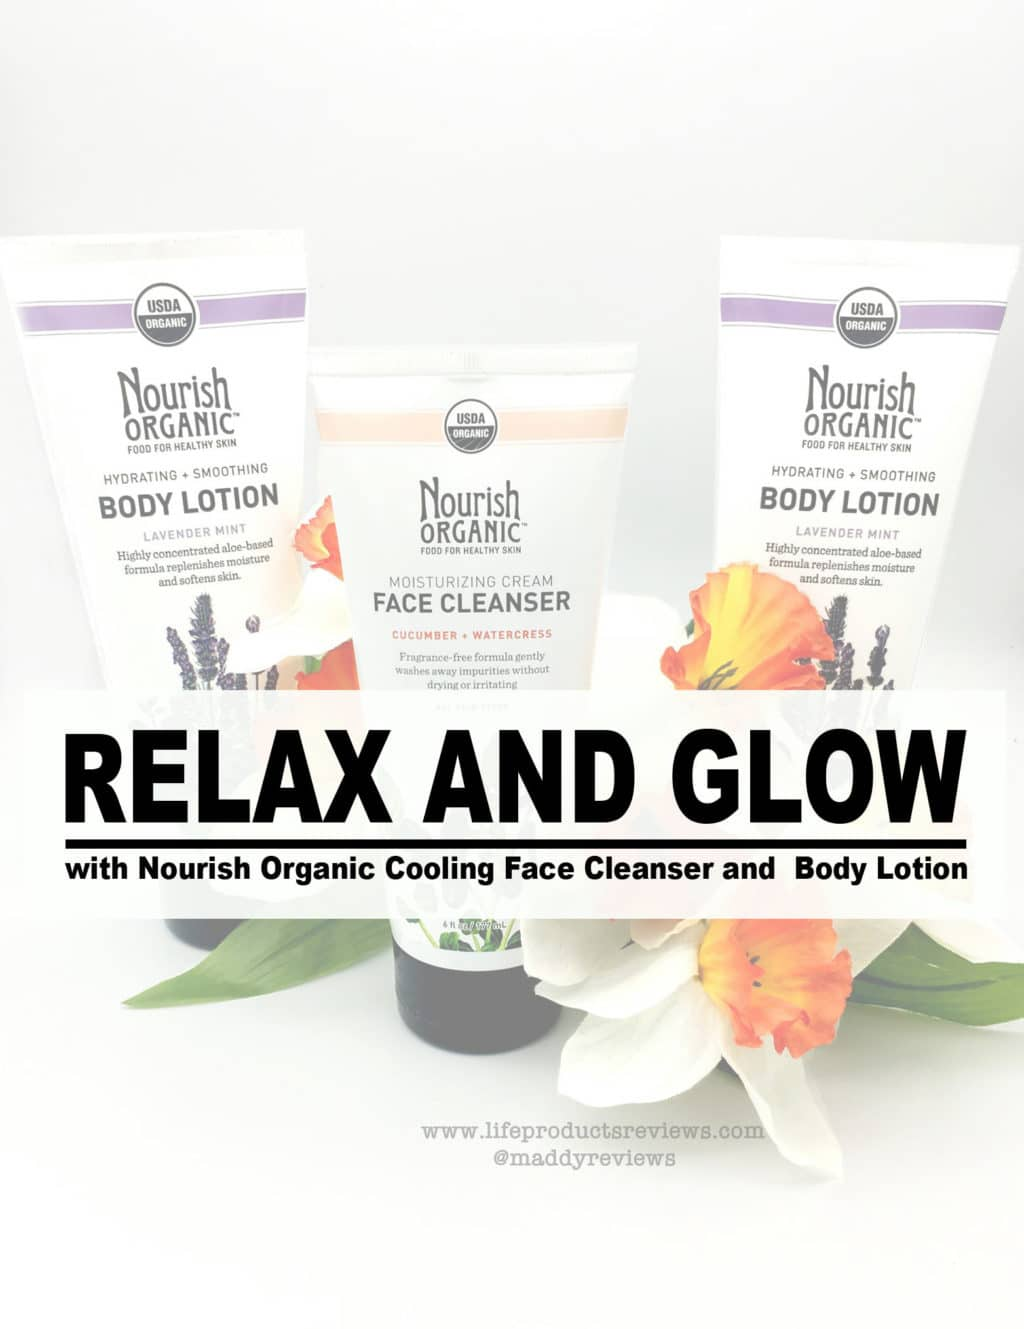 Relax and Glow Nourish and Organic face cleanser body lotion